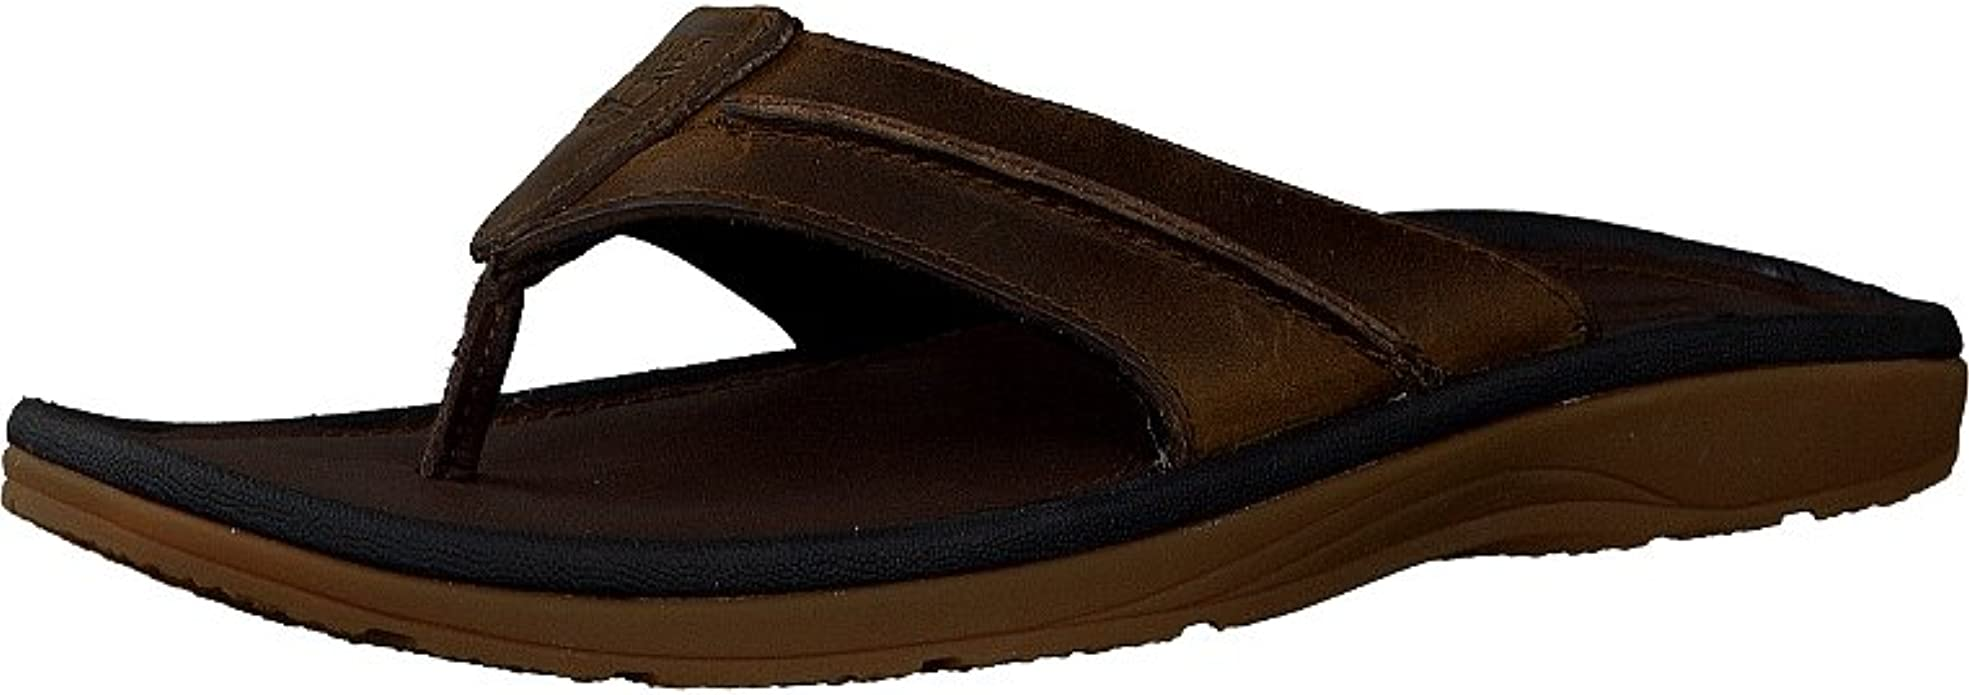 rehén Masacre construir  Timberland Men's Earthkeepers Flip-Flop Brown Size: 6.5 UK: Amazon.co.uk:  Shoes & Bags